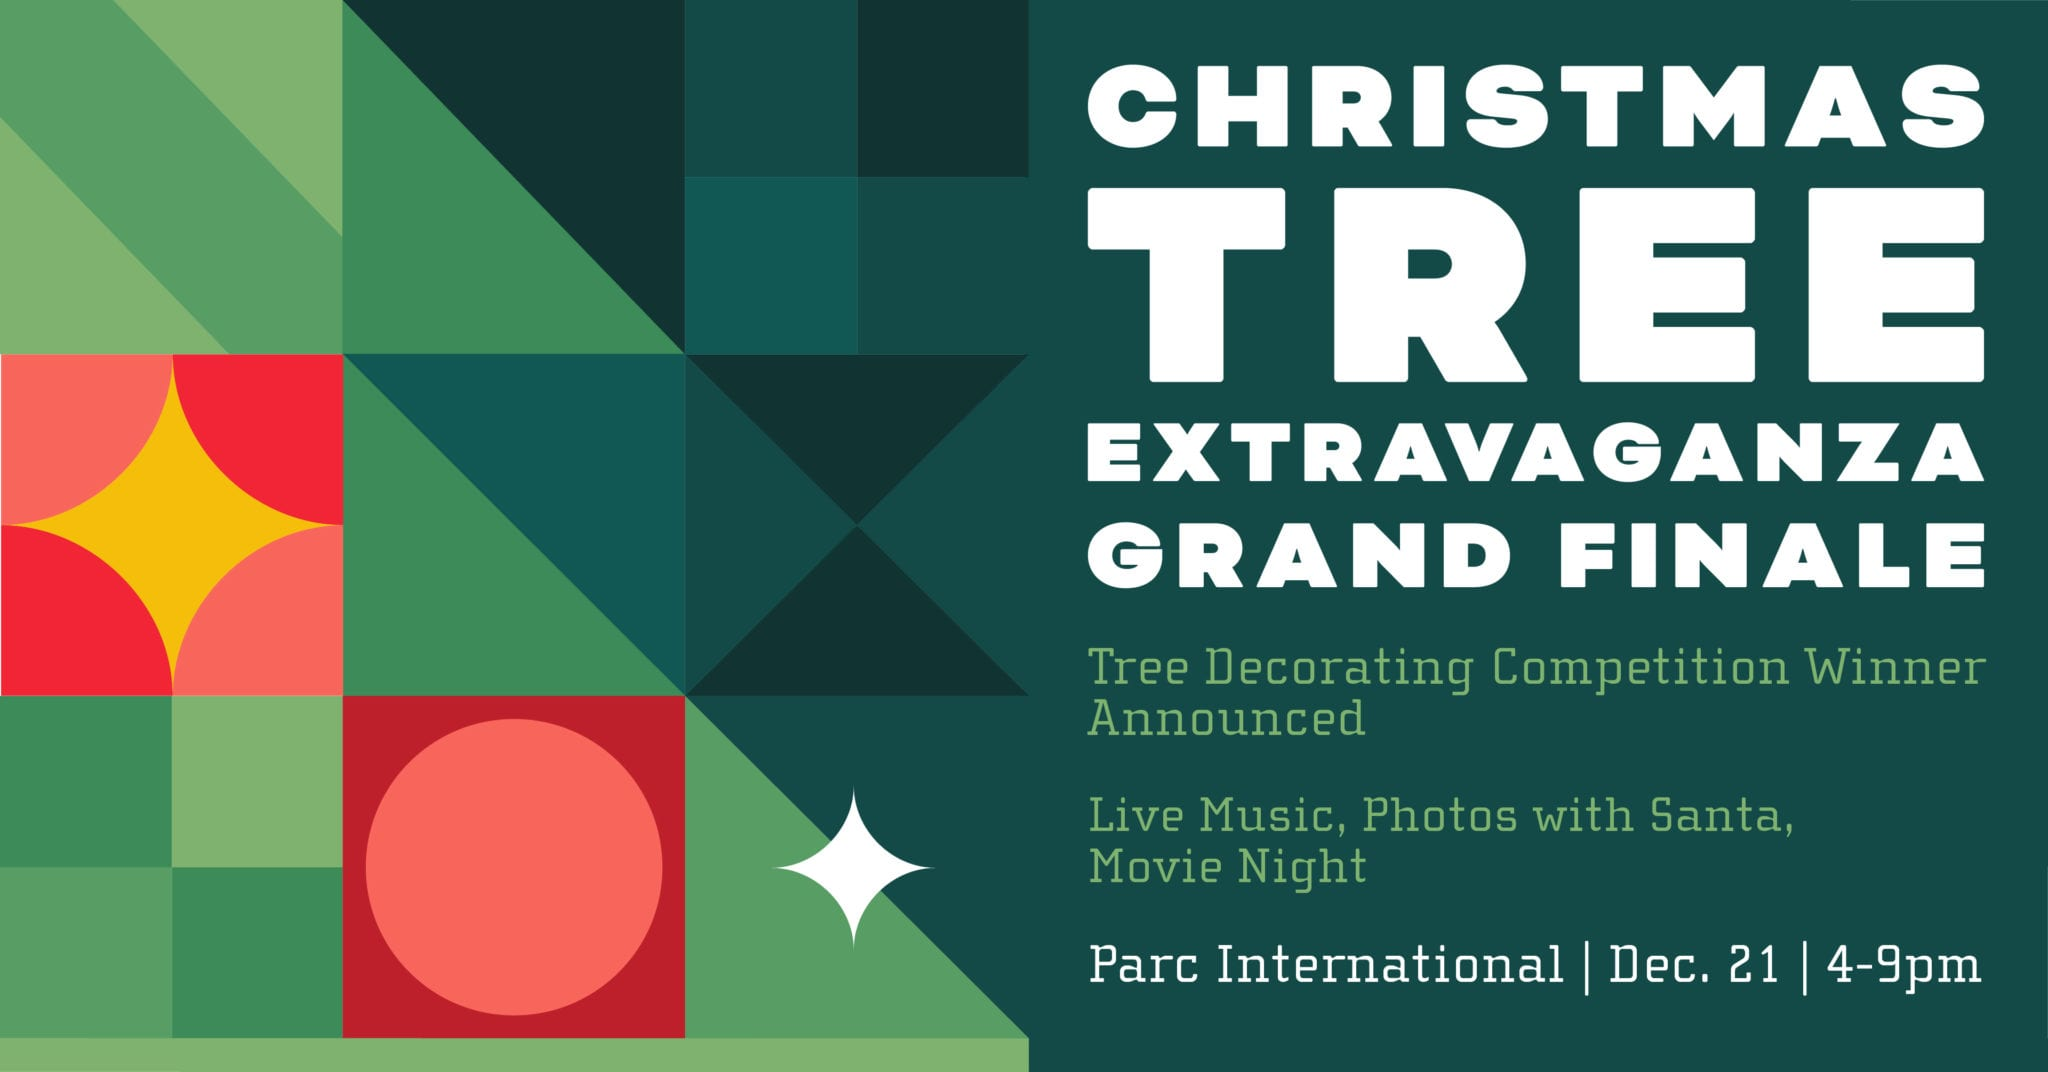 Christmas Tree Extravaganza finale event graphic